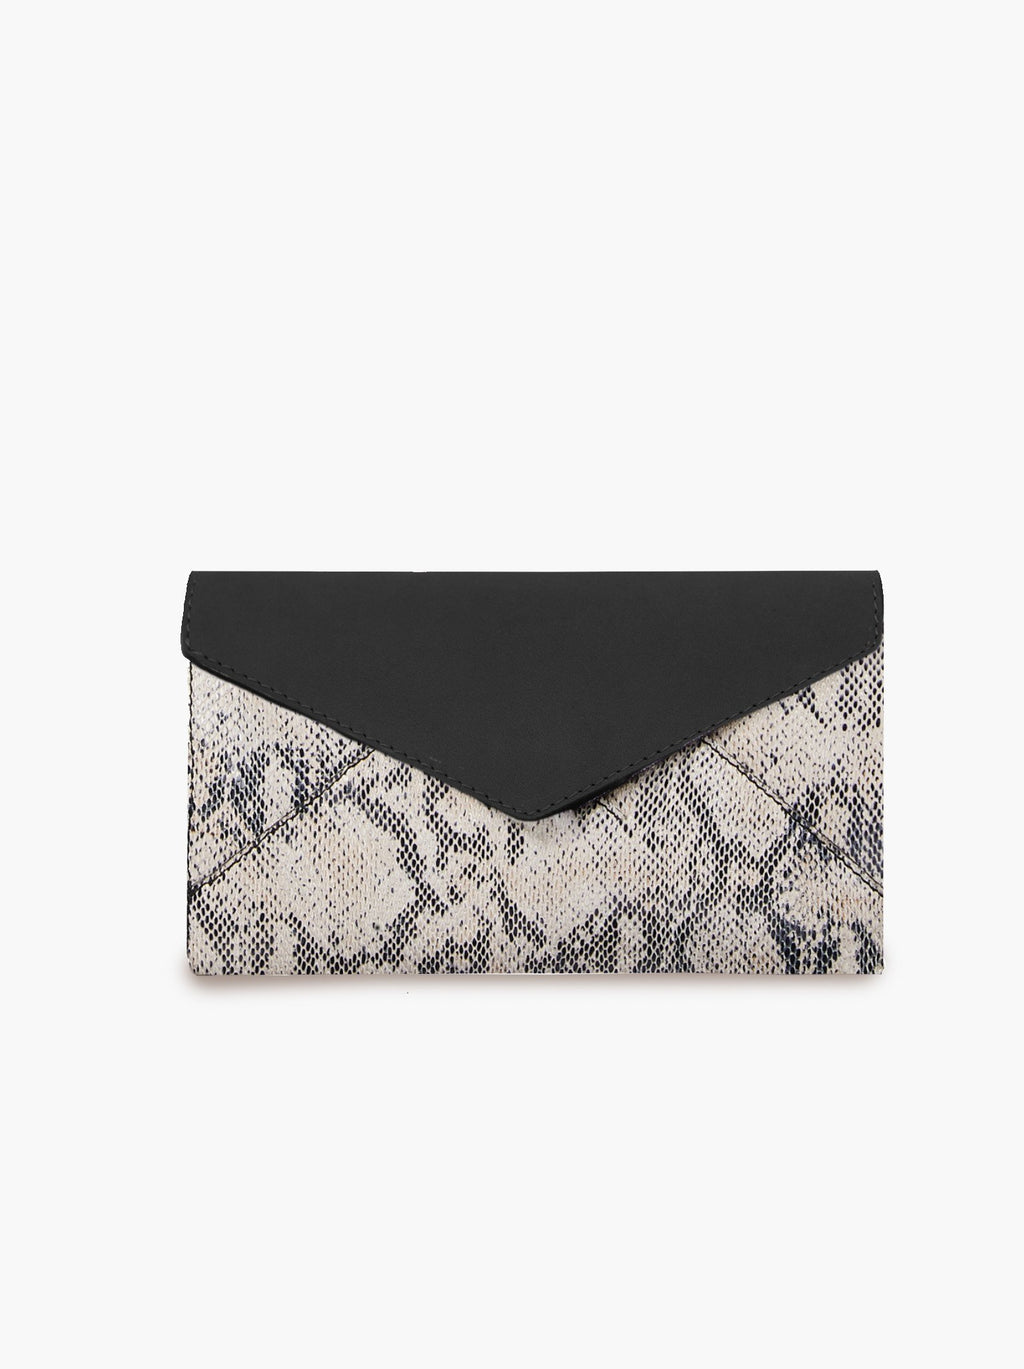 Solome Long Wallet- Snake